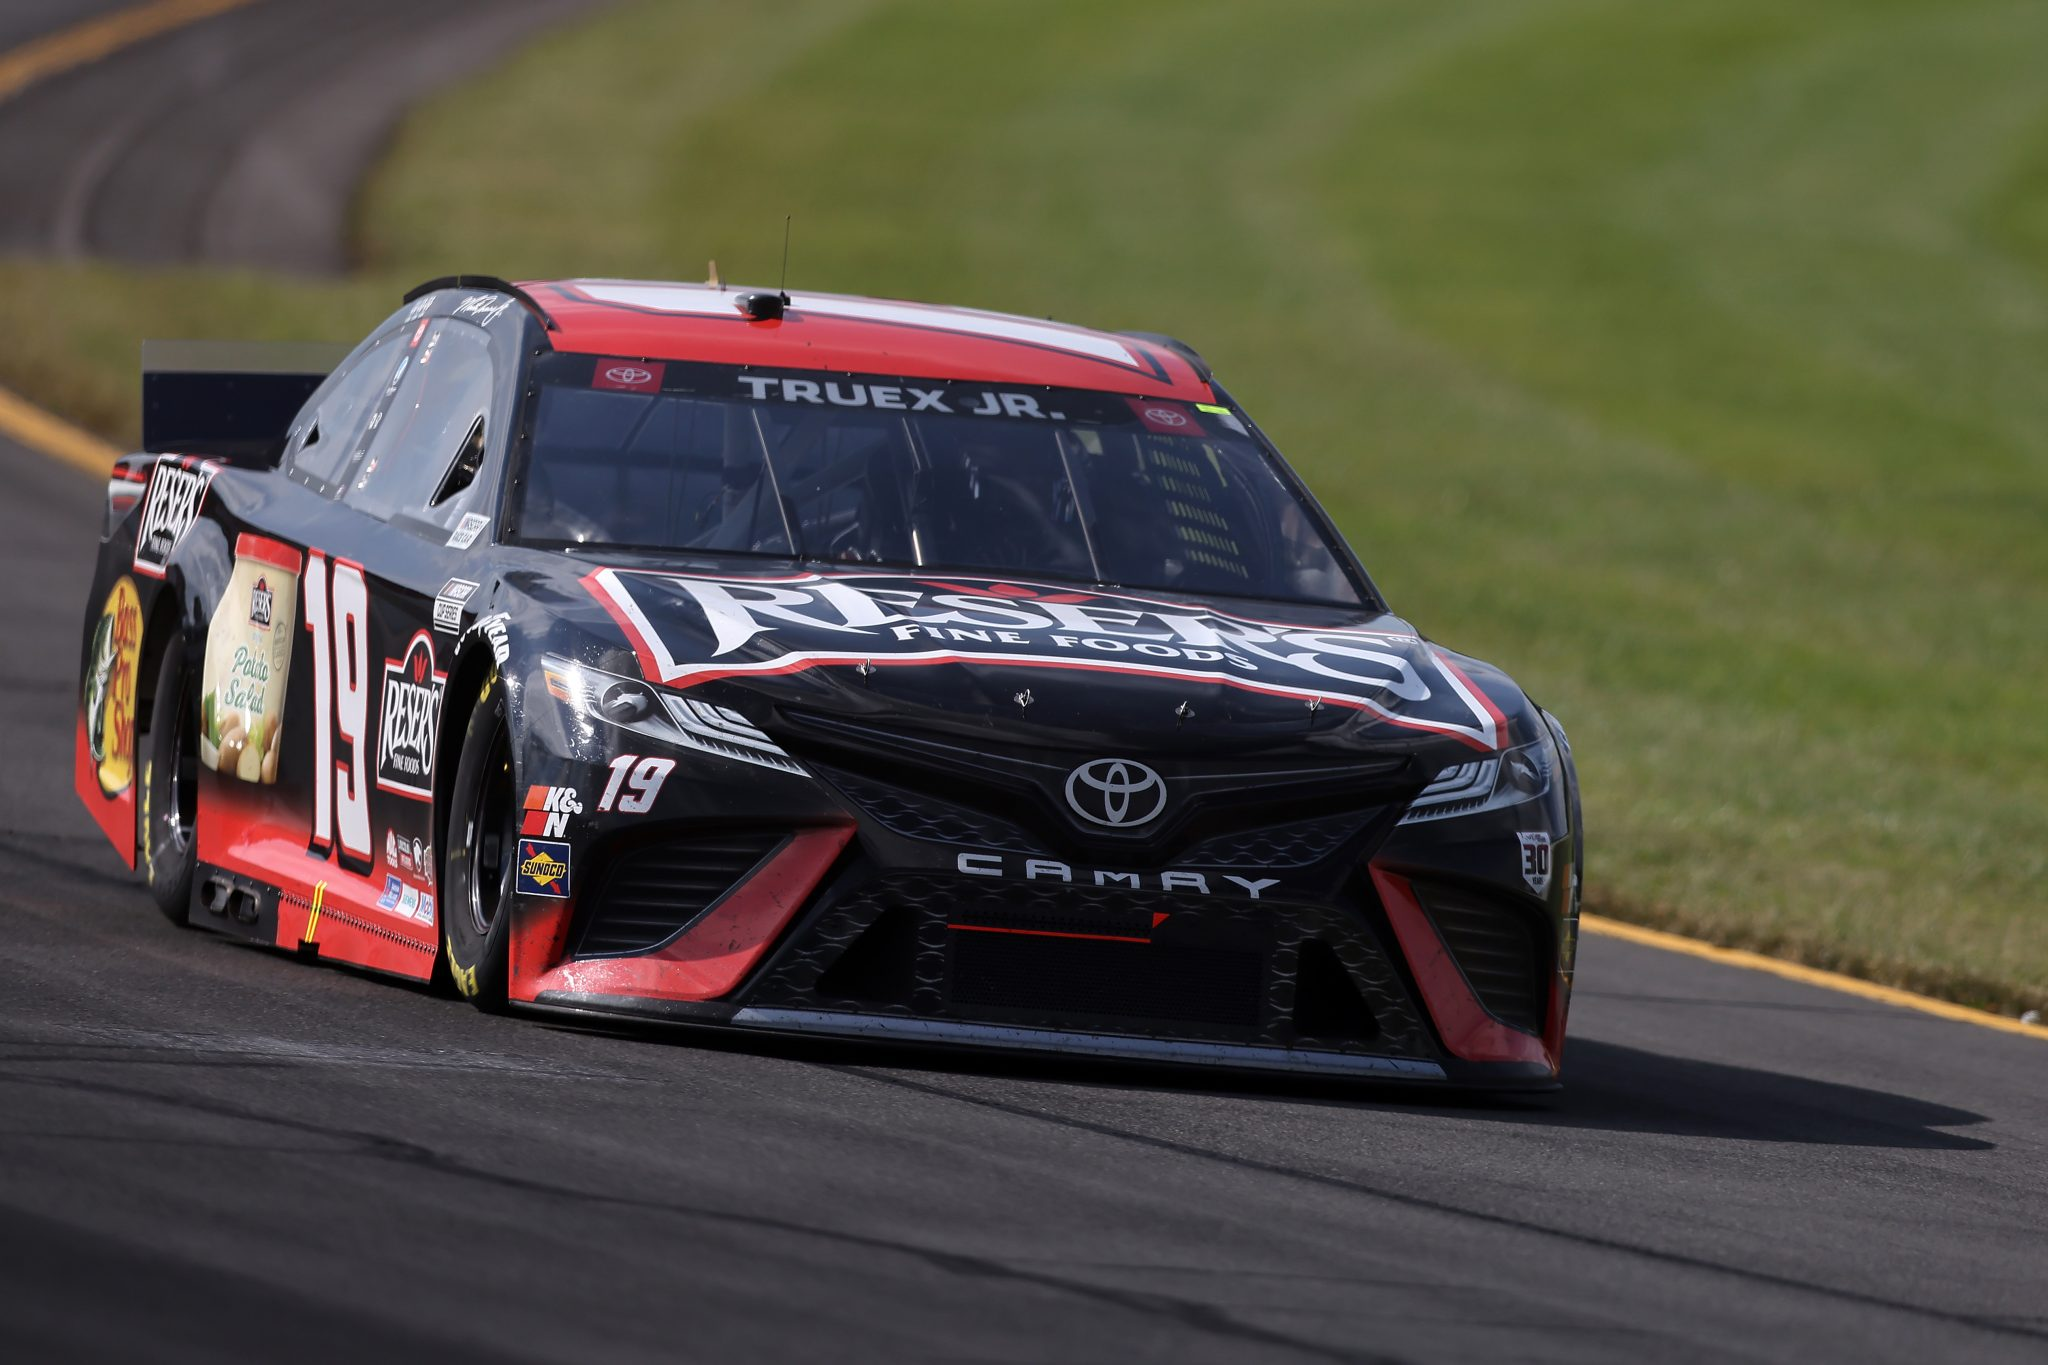 LONG POND, PENNSYLVANIA - JUNE 27: Martin Truex Jr., driver of the #19 STANLEY Toyota, drives during the NASCAR Cup Series Explore the Pocono Mountains 350 at Pocono Raceway on June 27, 2021 in Long Pond, Pennsylvania. (Photo by James Gilbert/Getty Images) | Getty Images